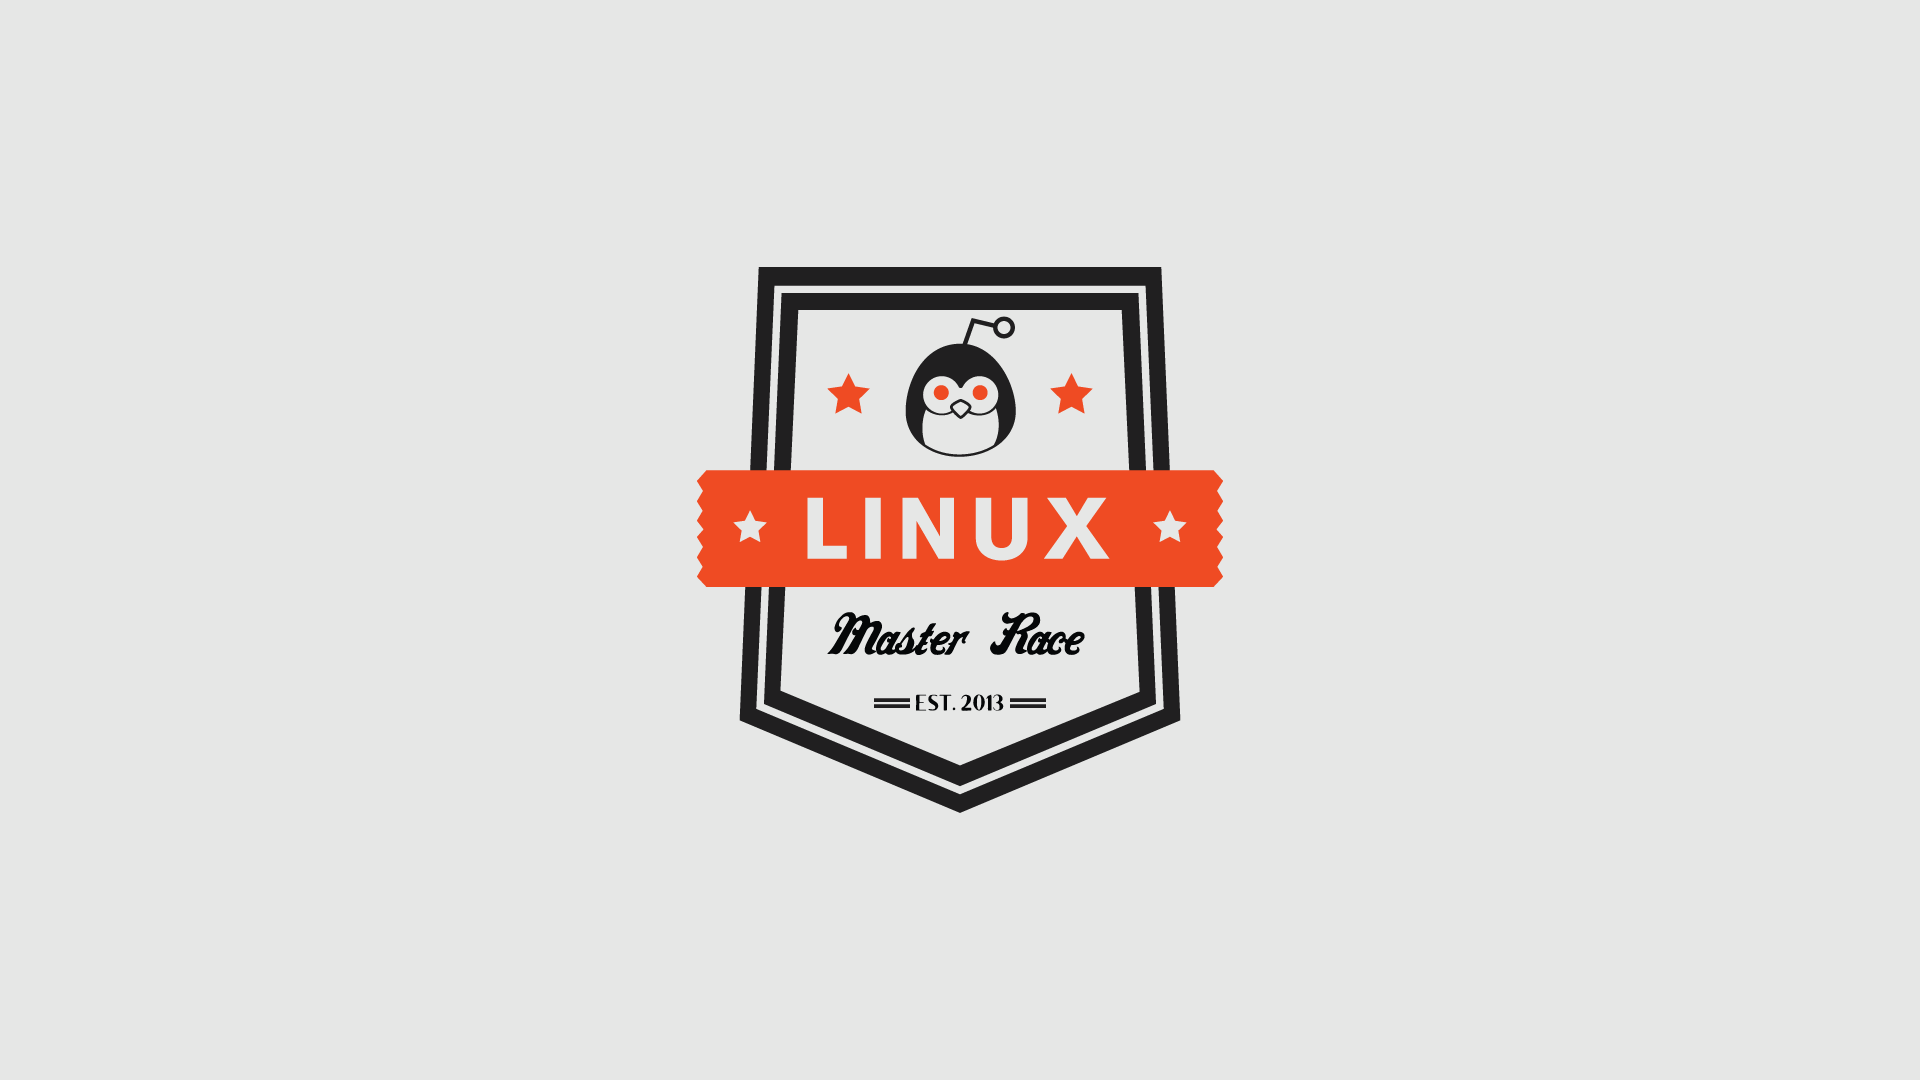 Linux-Master-Race-minimal-1920x1080-Need-iPhone-S-Plus-Background-for-wallpaper-wp3408148